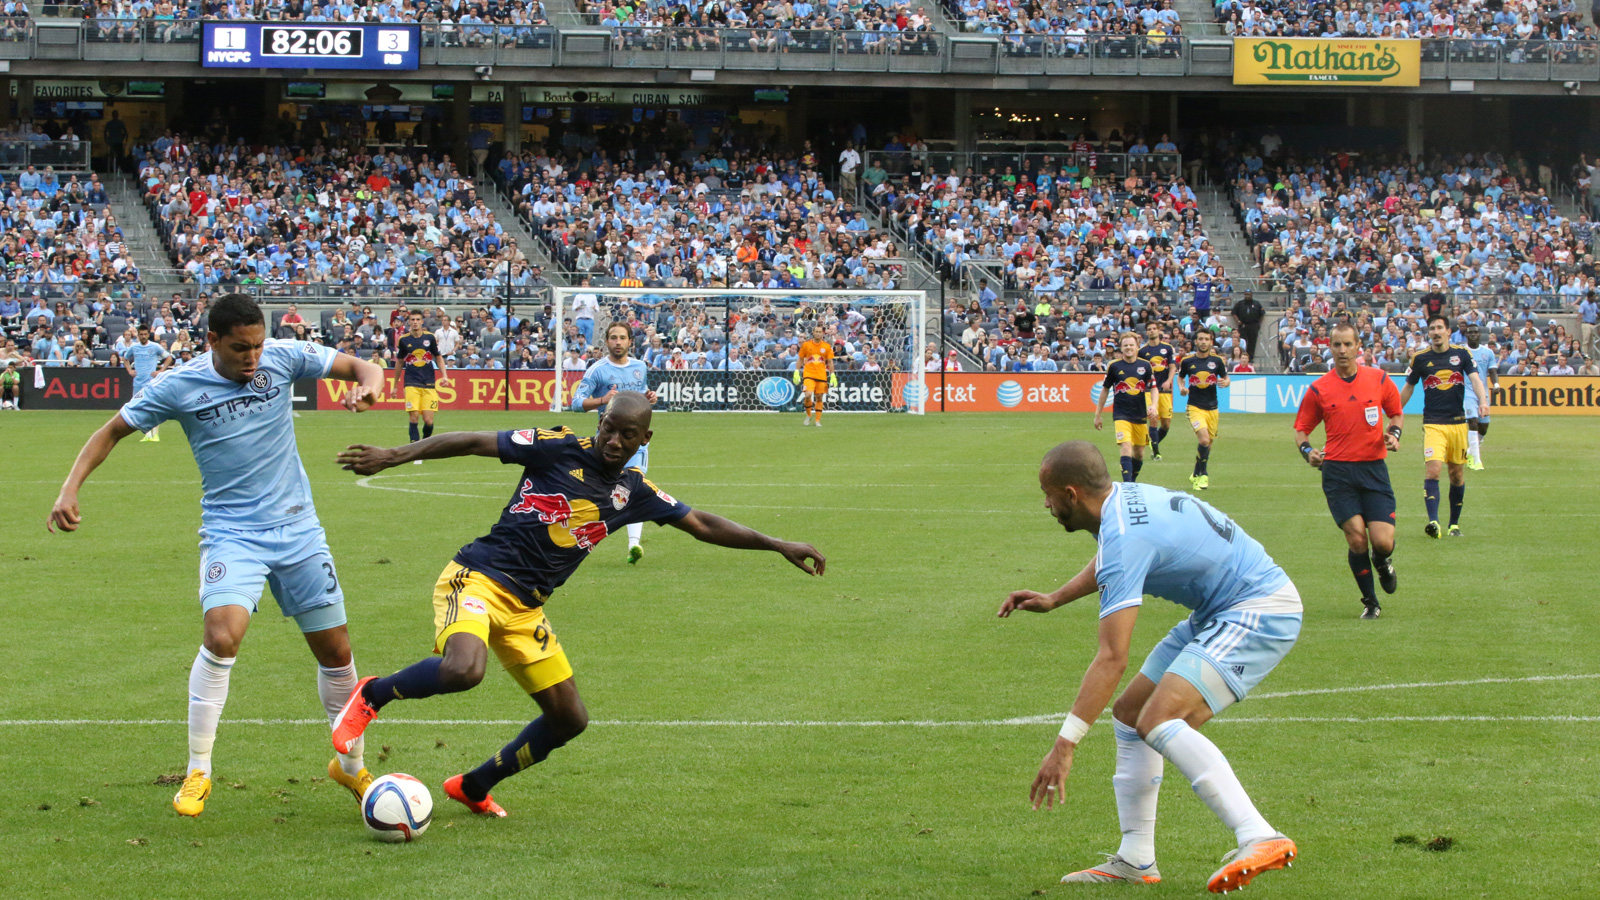 New York Red Bulls striker Bradley Wright-Phillips (99) gets technical with the ball, controlling it while under pressure from NYCFC defender Jason Hernandez (21) and midfielder Javier Calle (30).